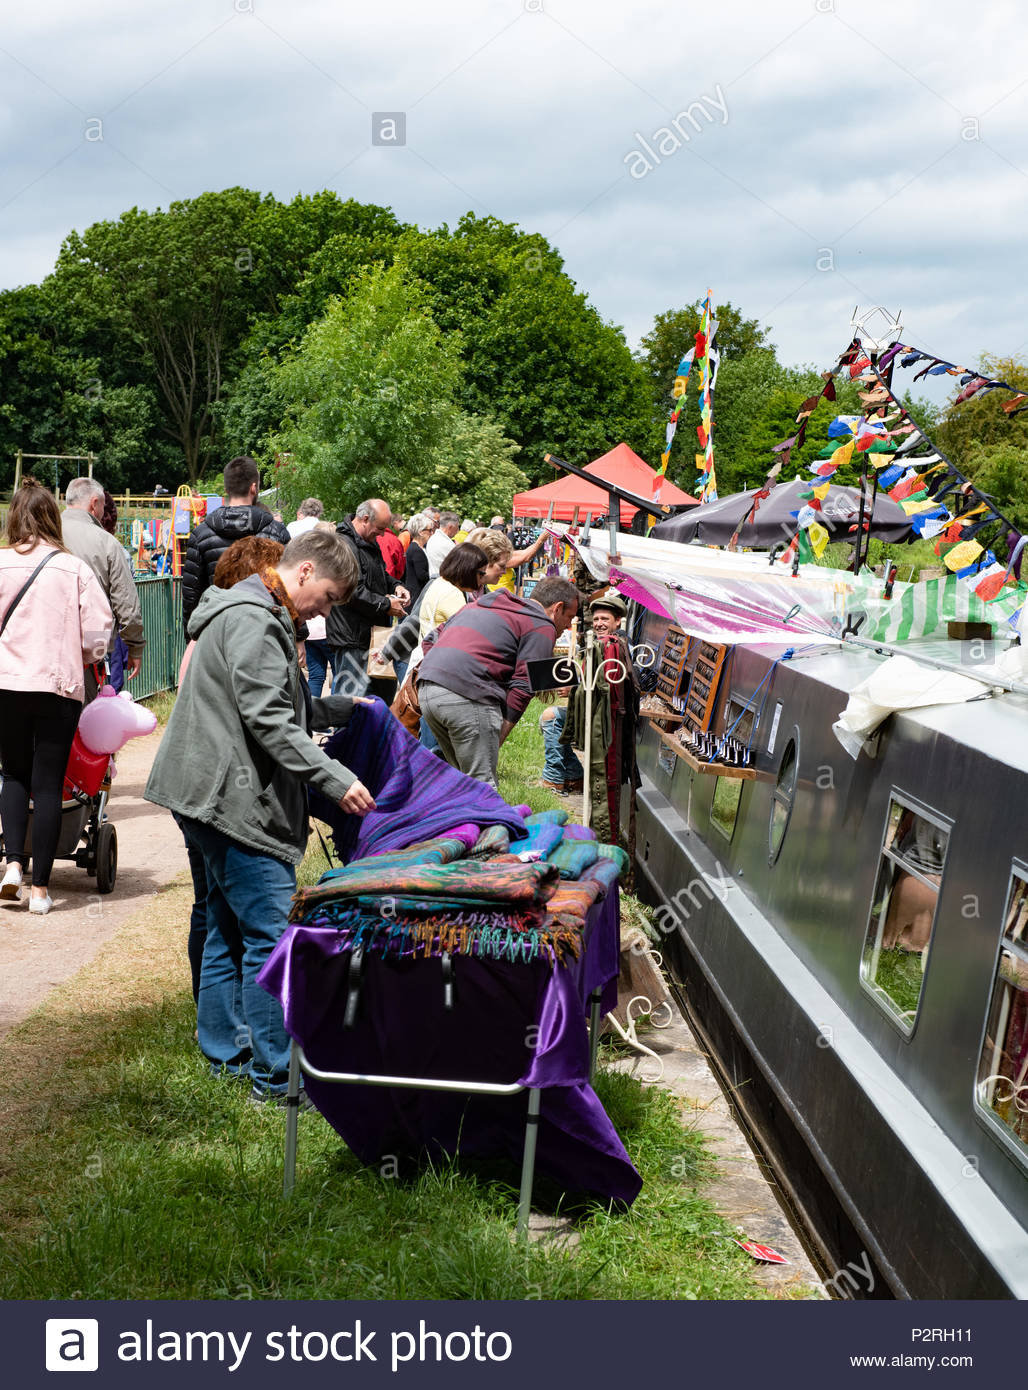 Middlewich, UK. 16th, June, 2018. Visitors enjoyed visiting the floating market at the Middlewich Folk and Boat Festival held in the Cheshire town over the weekend. Music and entertainment was on offer to visitors​ to the annual event including the crowning of the Rose Queen 2018/19 © Phil Pickin/ Alamy Live News - Stock Image